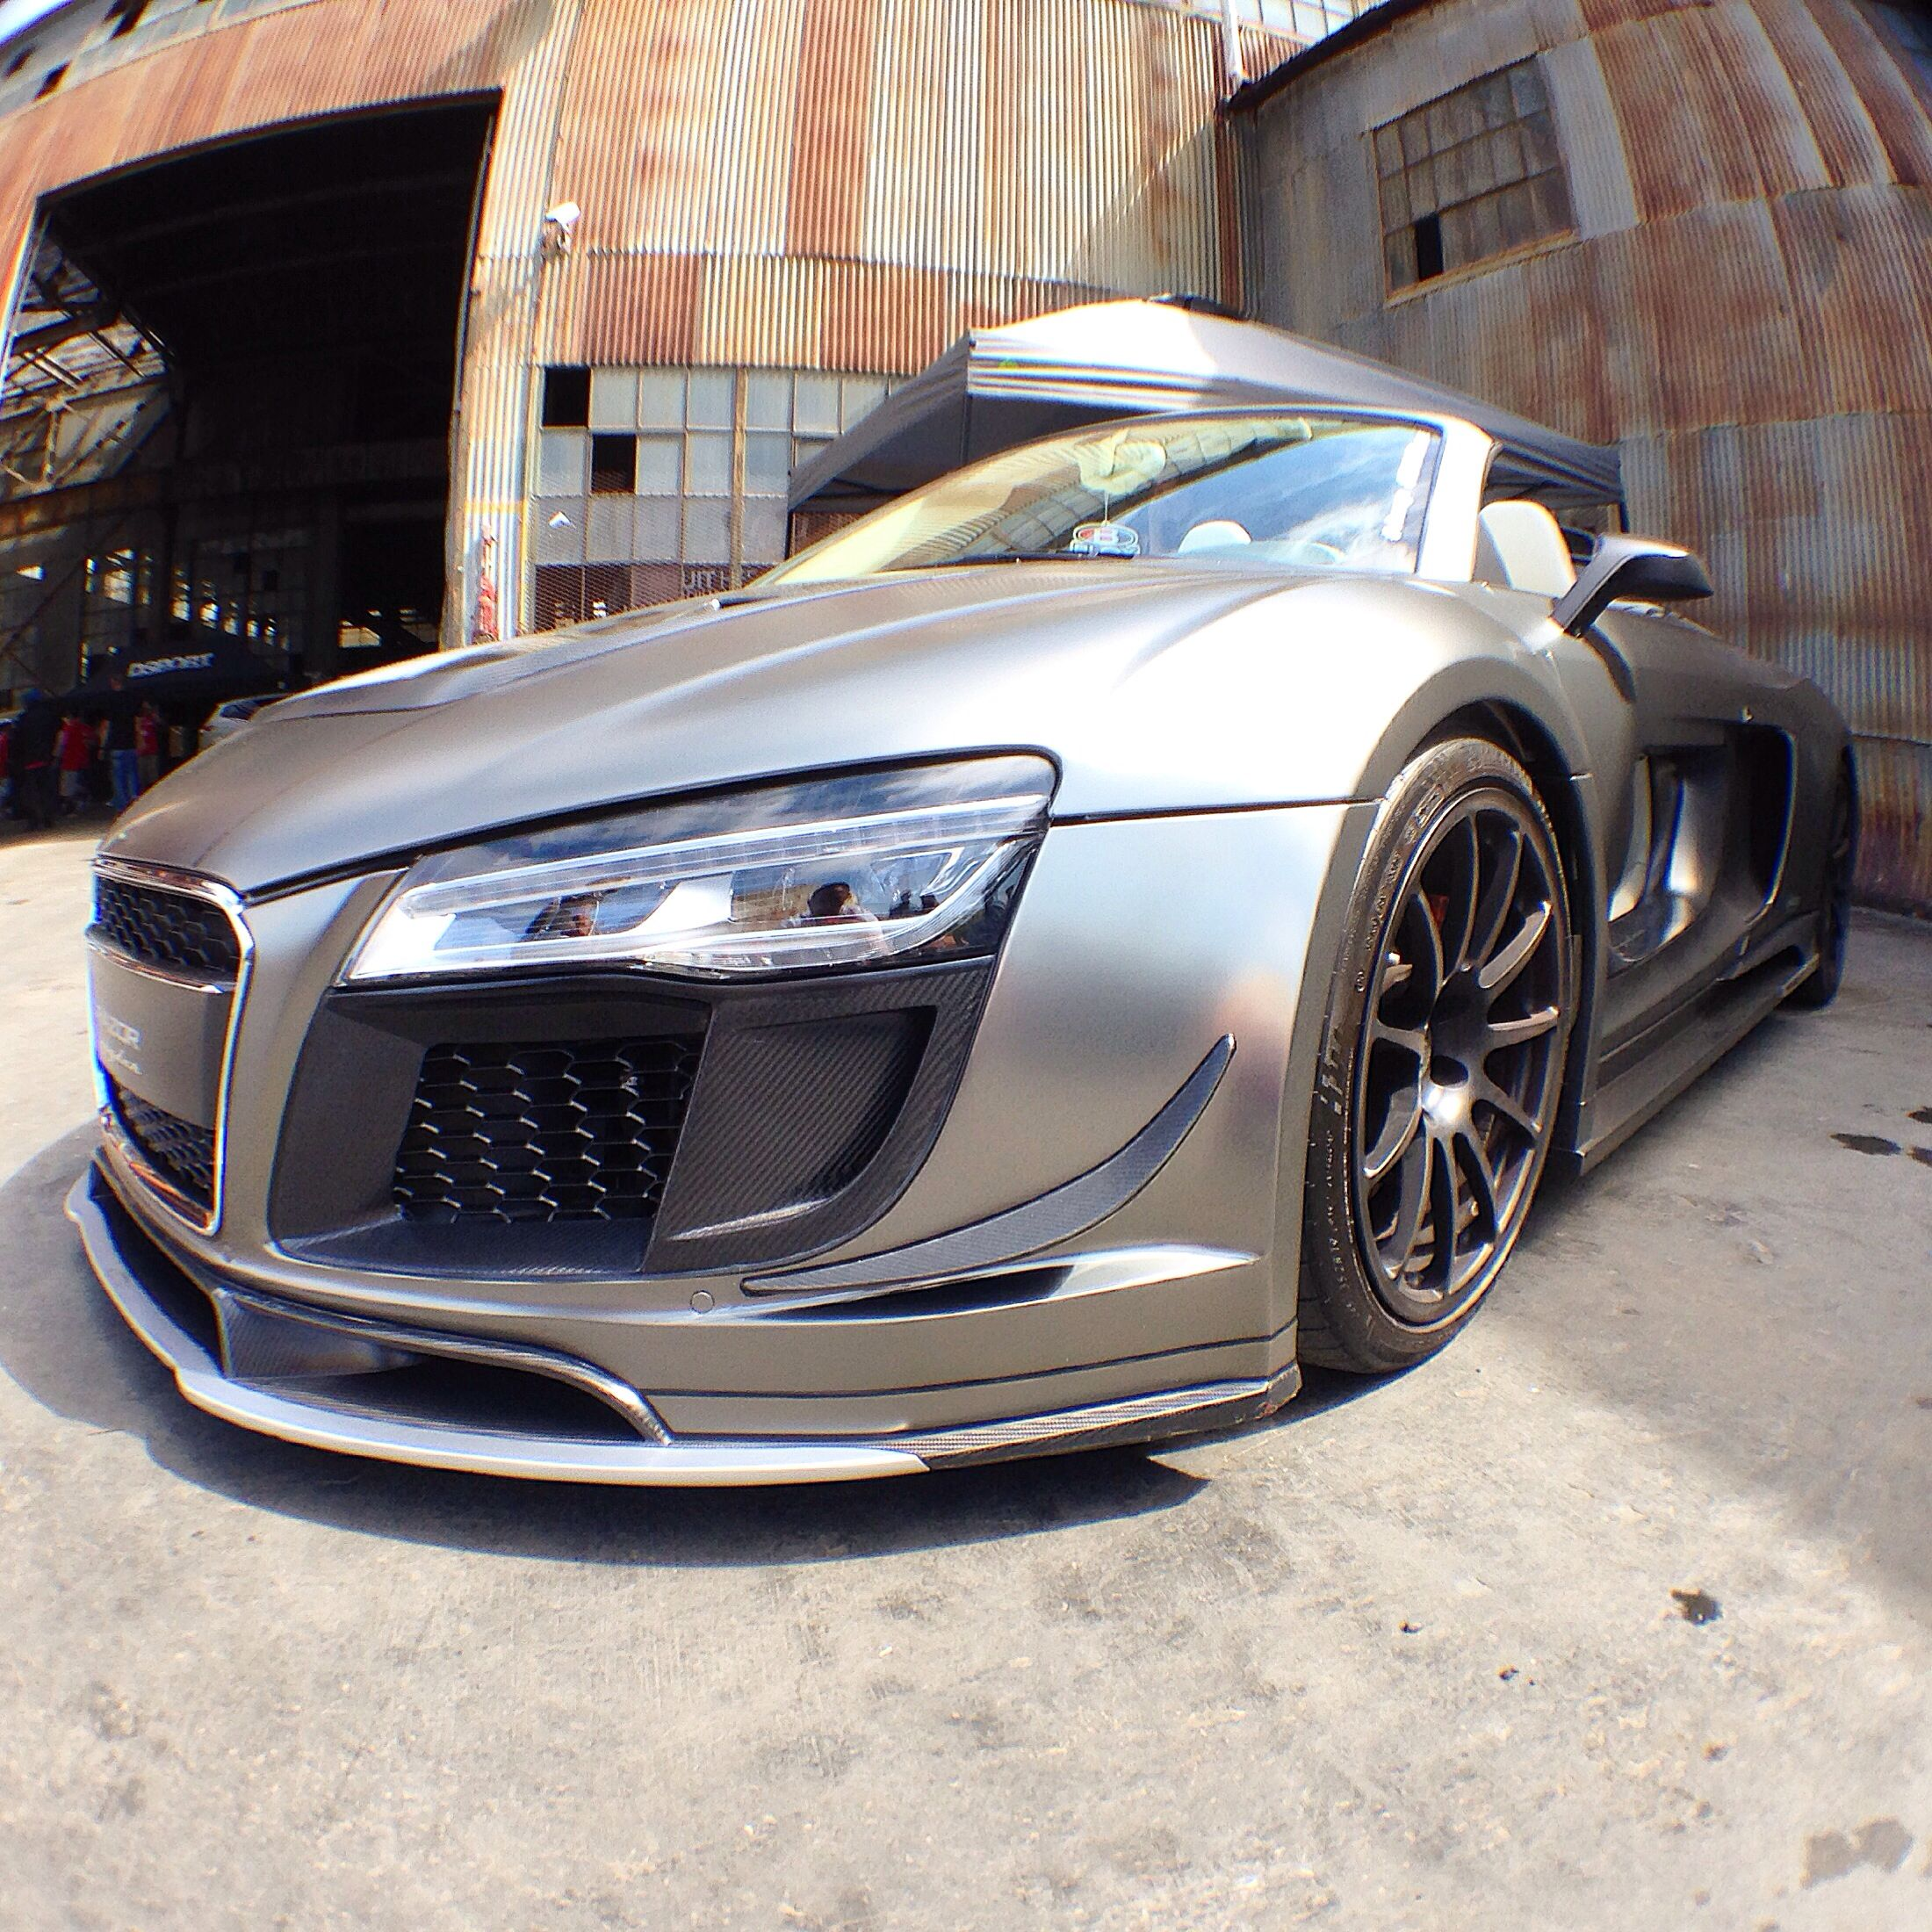 Custom Audi R8! Photo Taken At The Blox Evolution 2014 Car